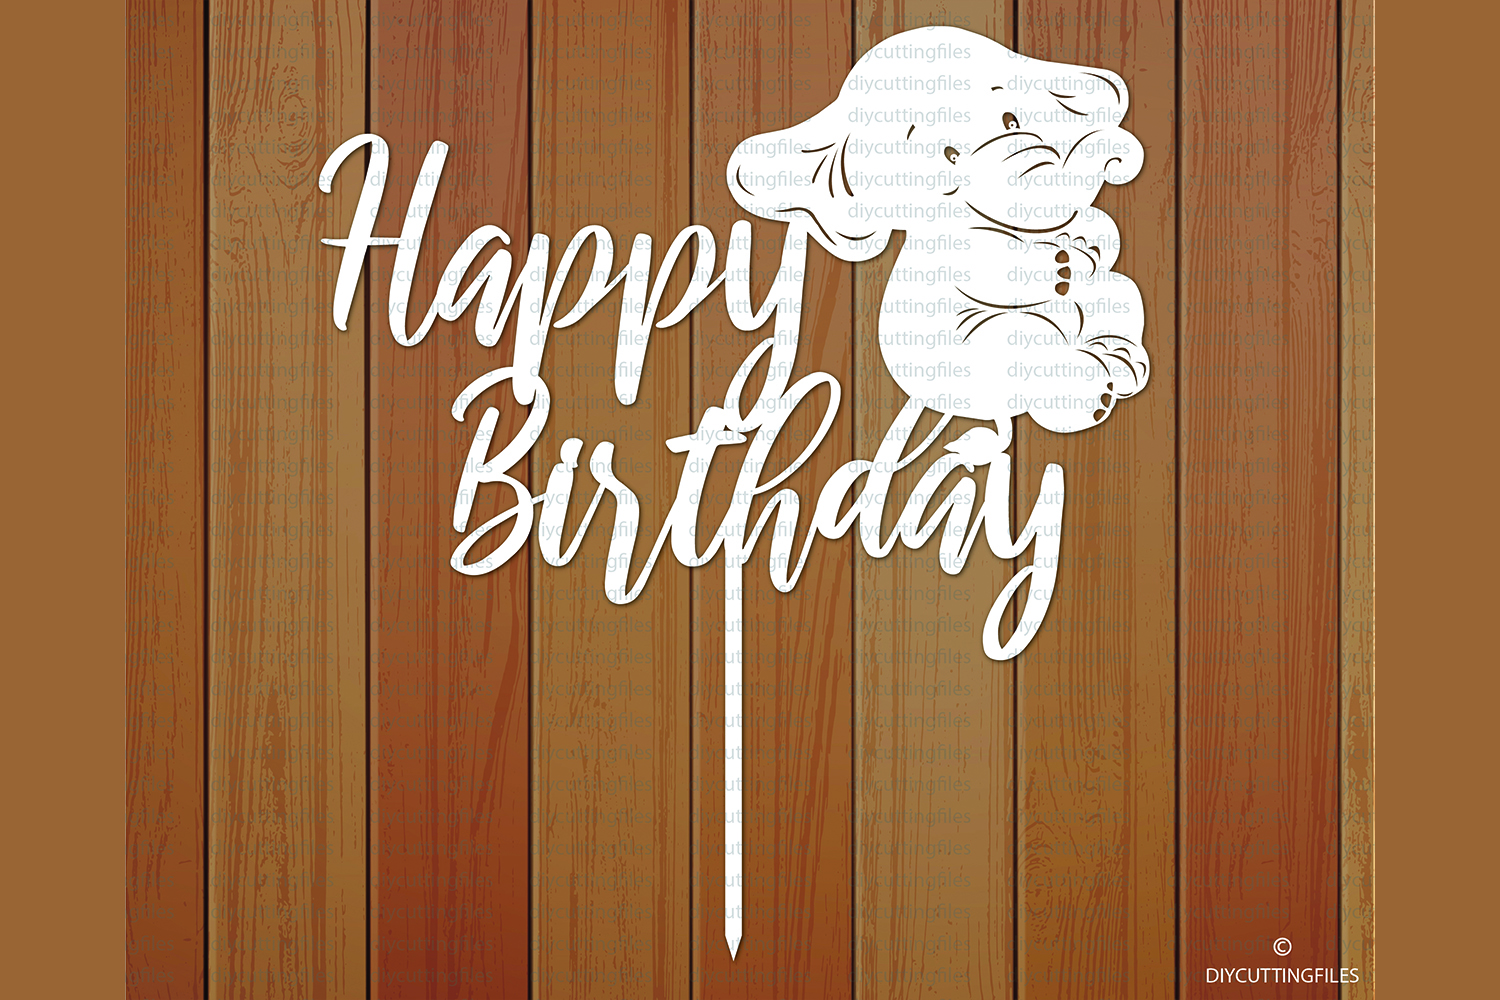 Download Free Happy Birthday Cake Topper Graphic By Diycuttingfiles Creative for Cricut Explore, Silhouette and other cutting machines.